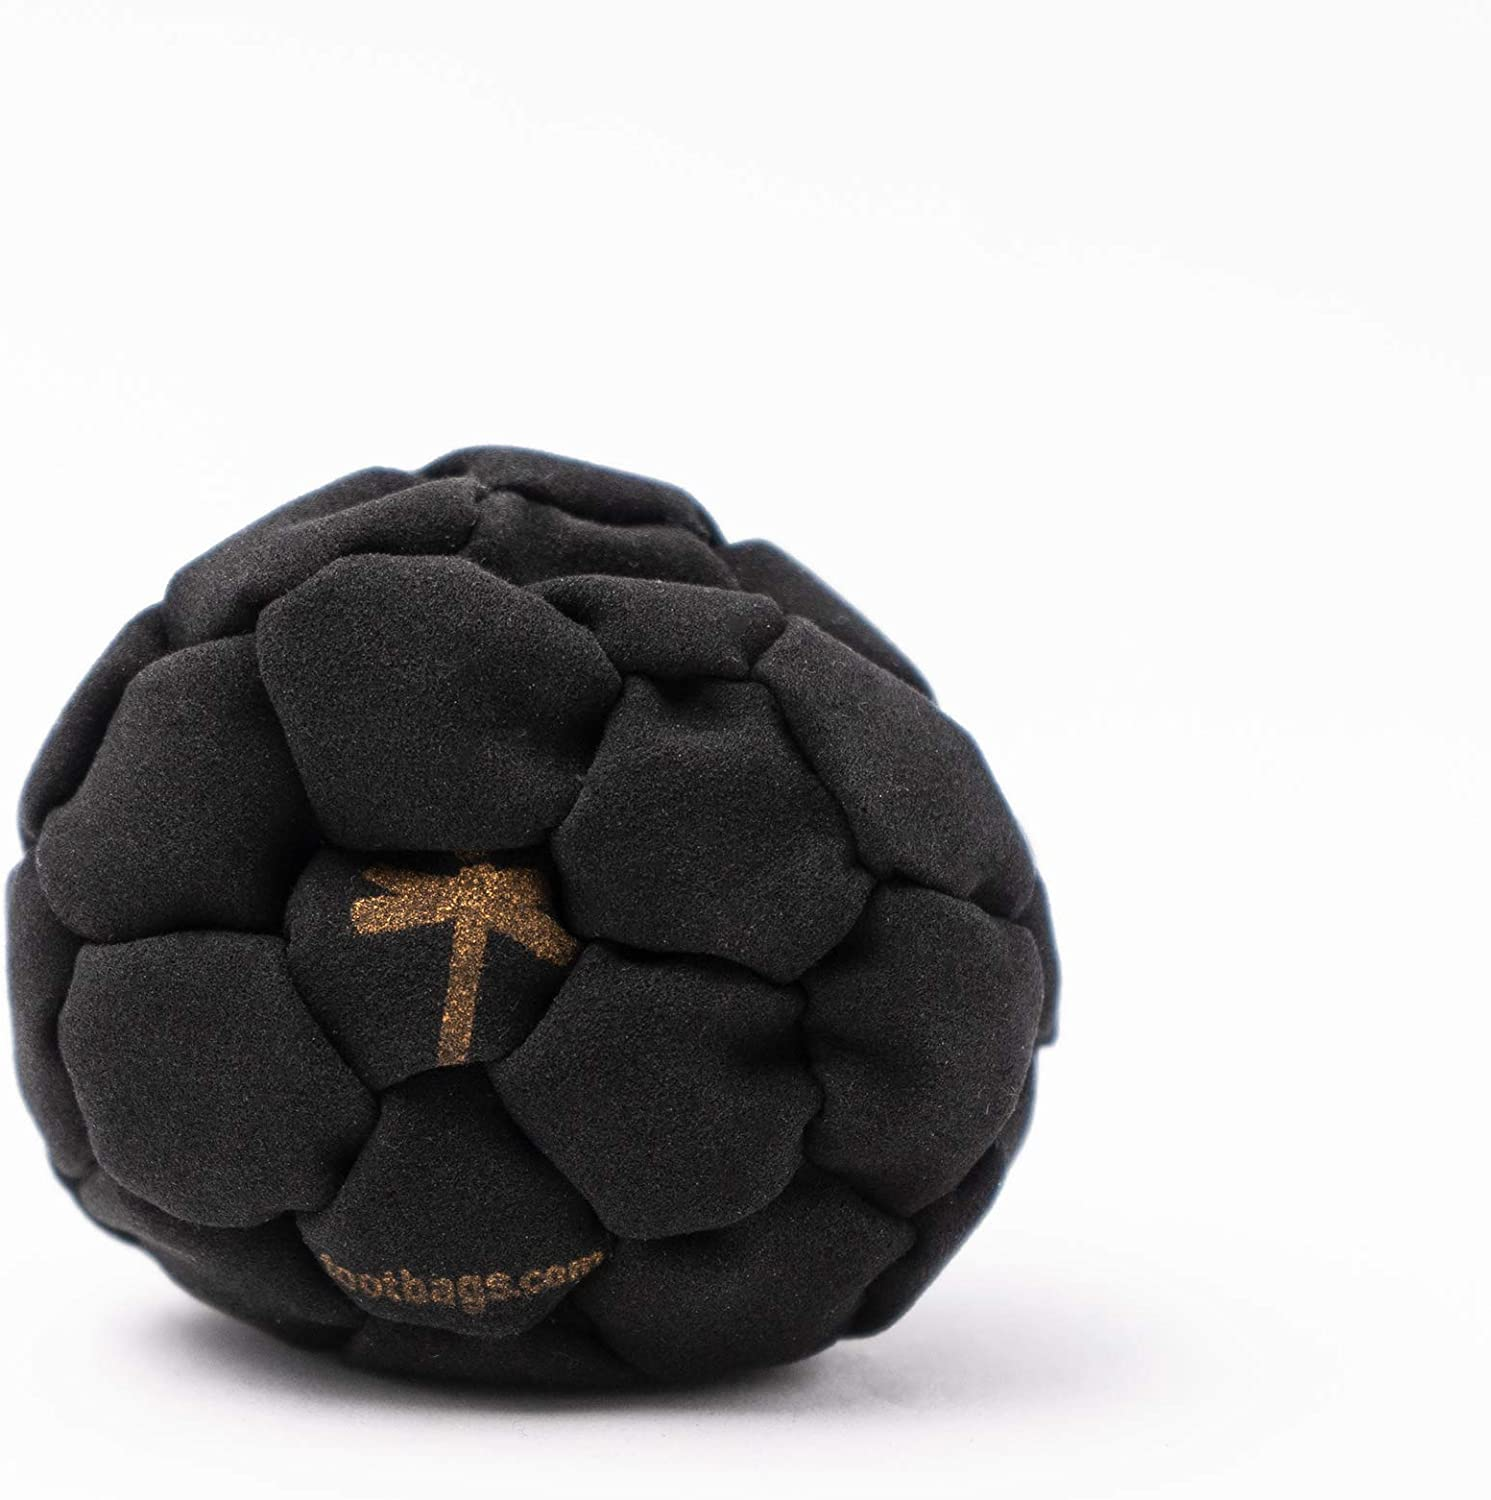 Hacky Sack Dragonfly Footbags Midnight 32 Panel